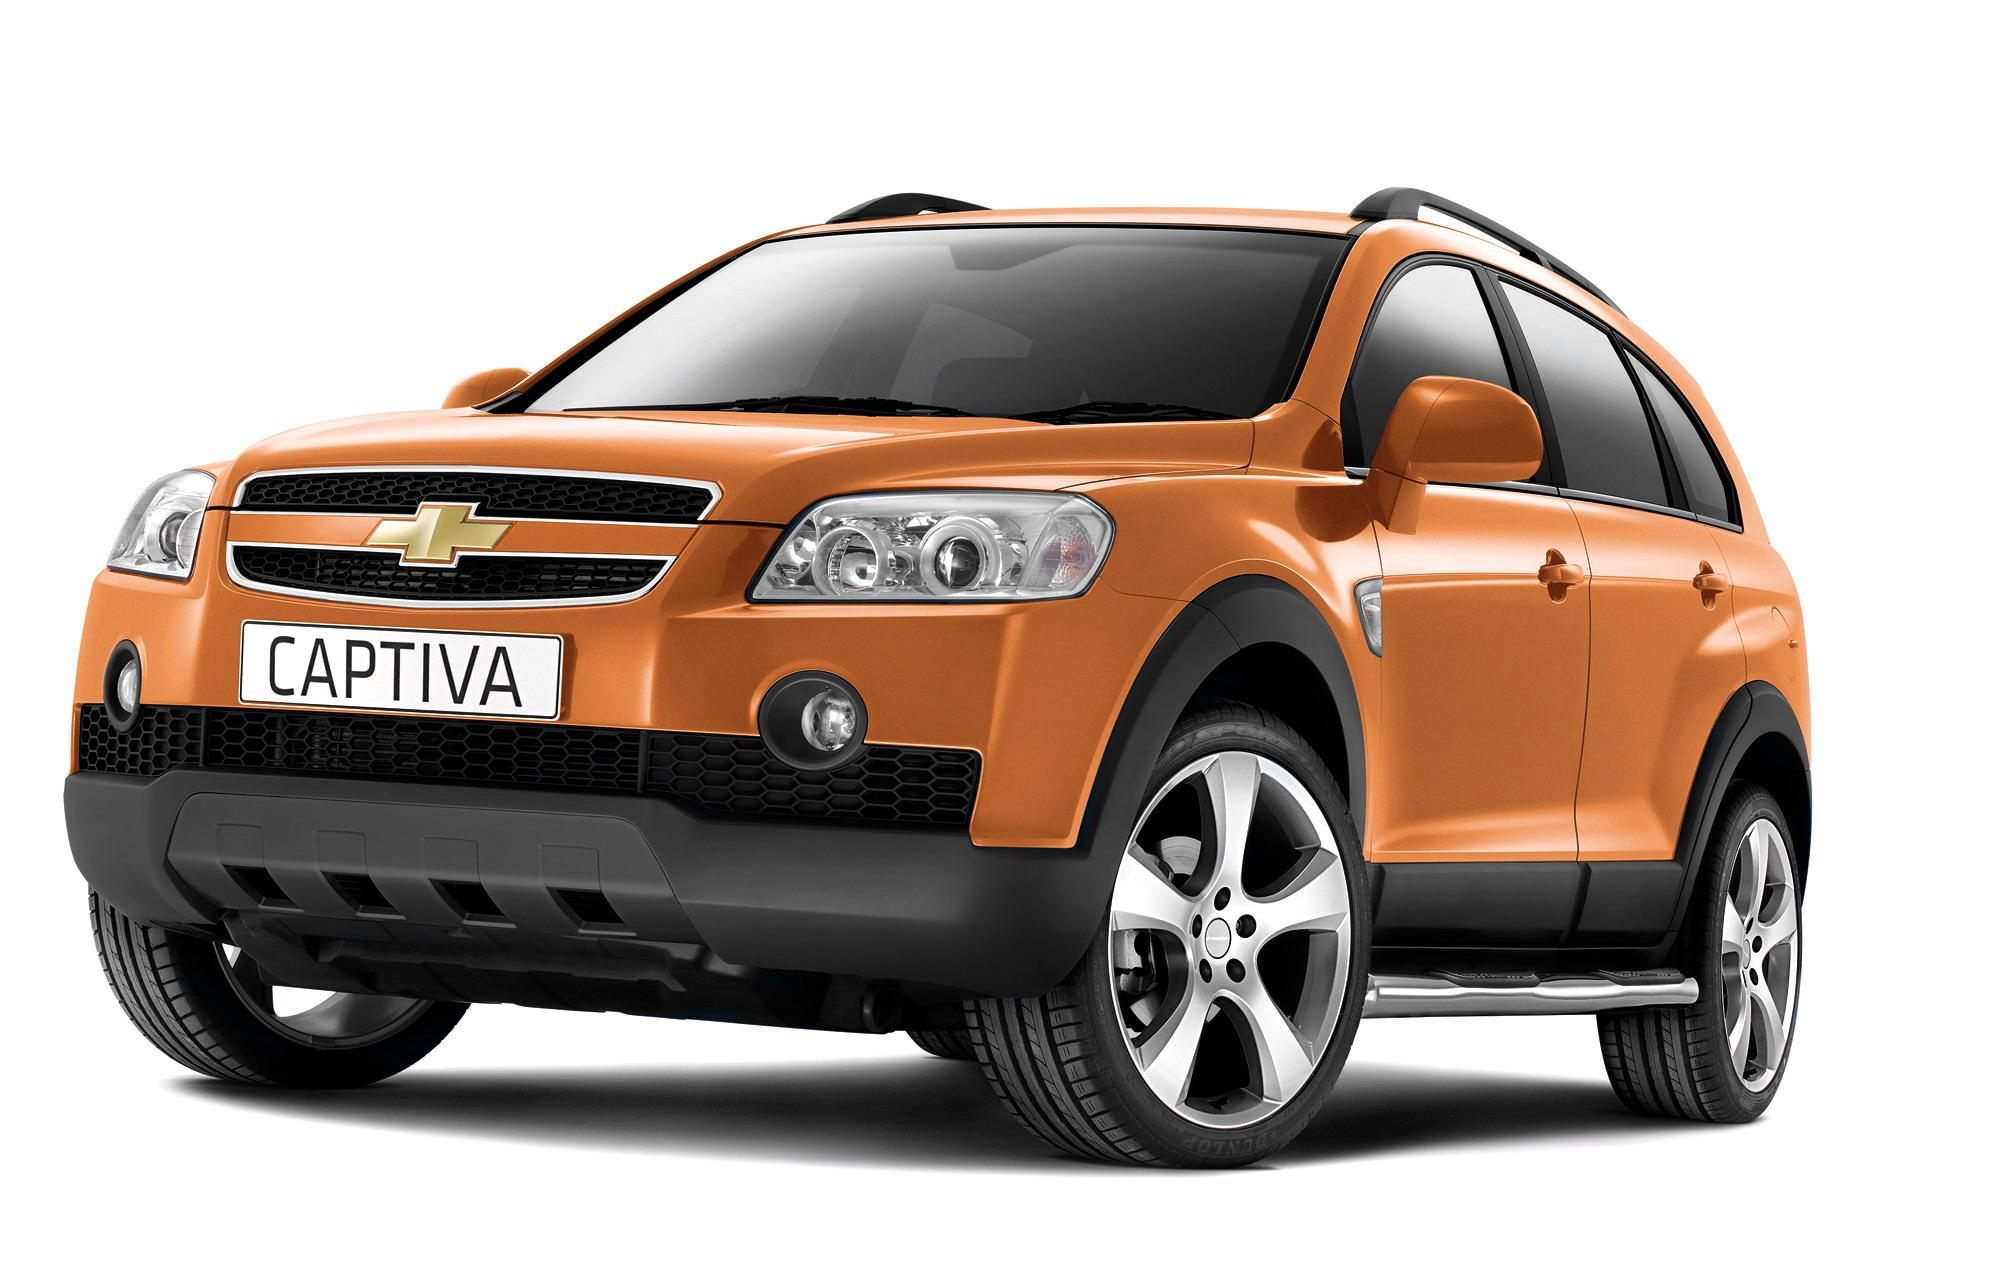 2008 chevrolet captiva 'edge' review - gallery - top speed